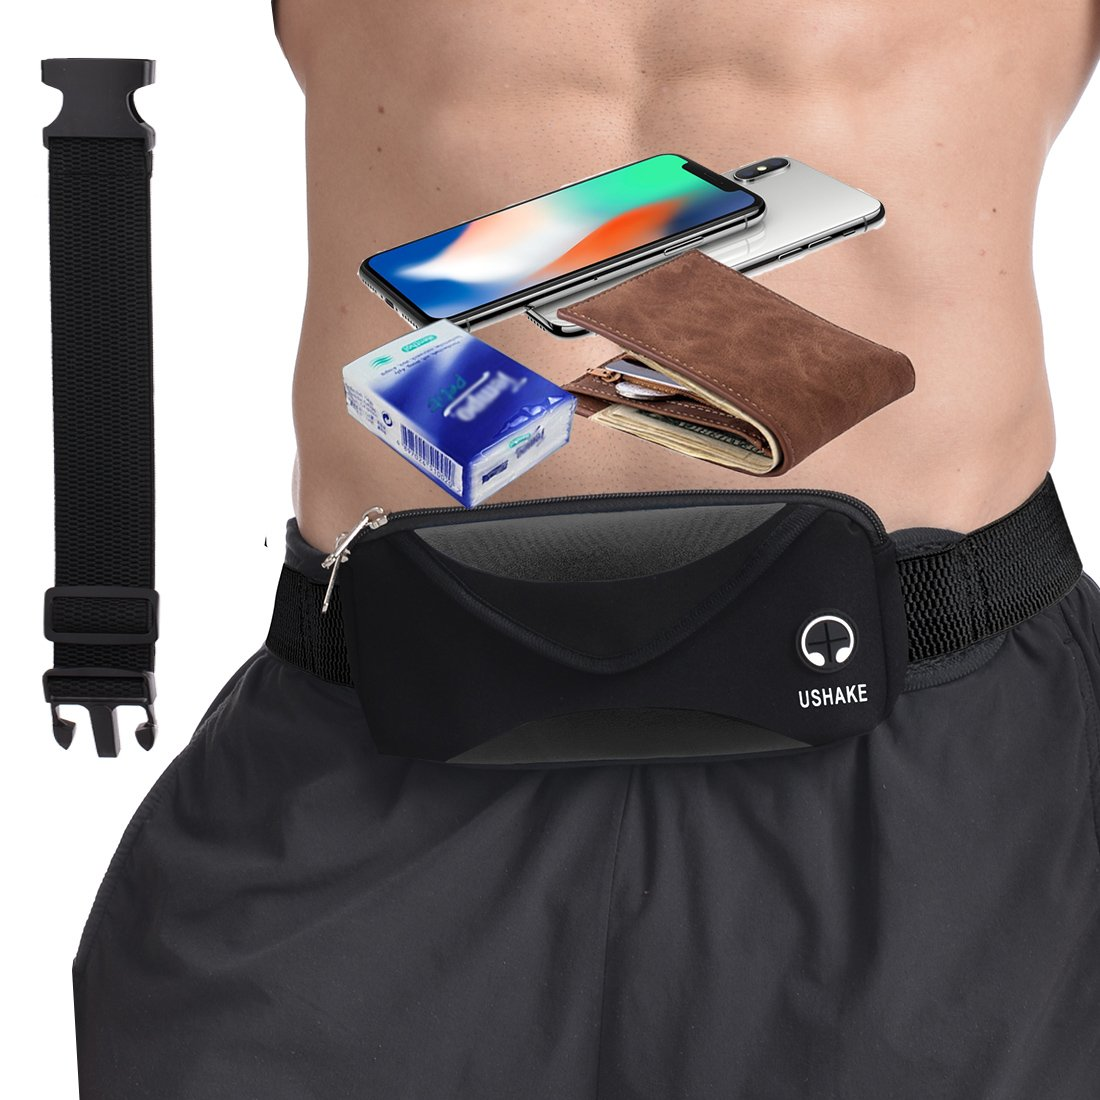 UShake Running Belt with Extender Belt, Bounce Free Pouch Bag, Fanny Pack Workout Belt Sports Waist Pack Belt Pouch for Apple iPhone 8 X 7 6 6+ Samsung Note Galaxy in Running Walking Cycling Gym-05BK